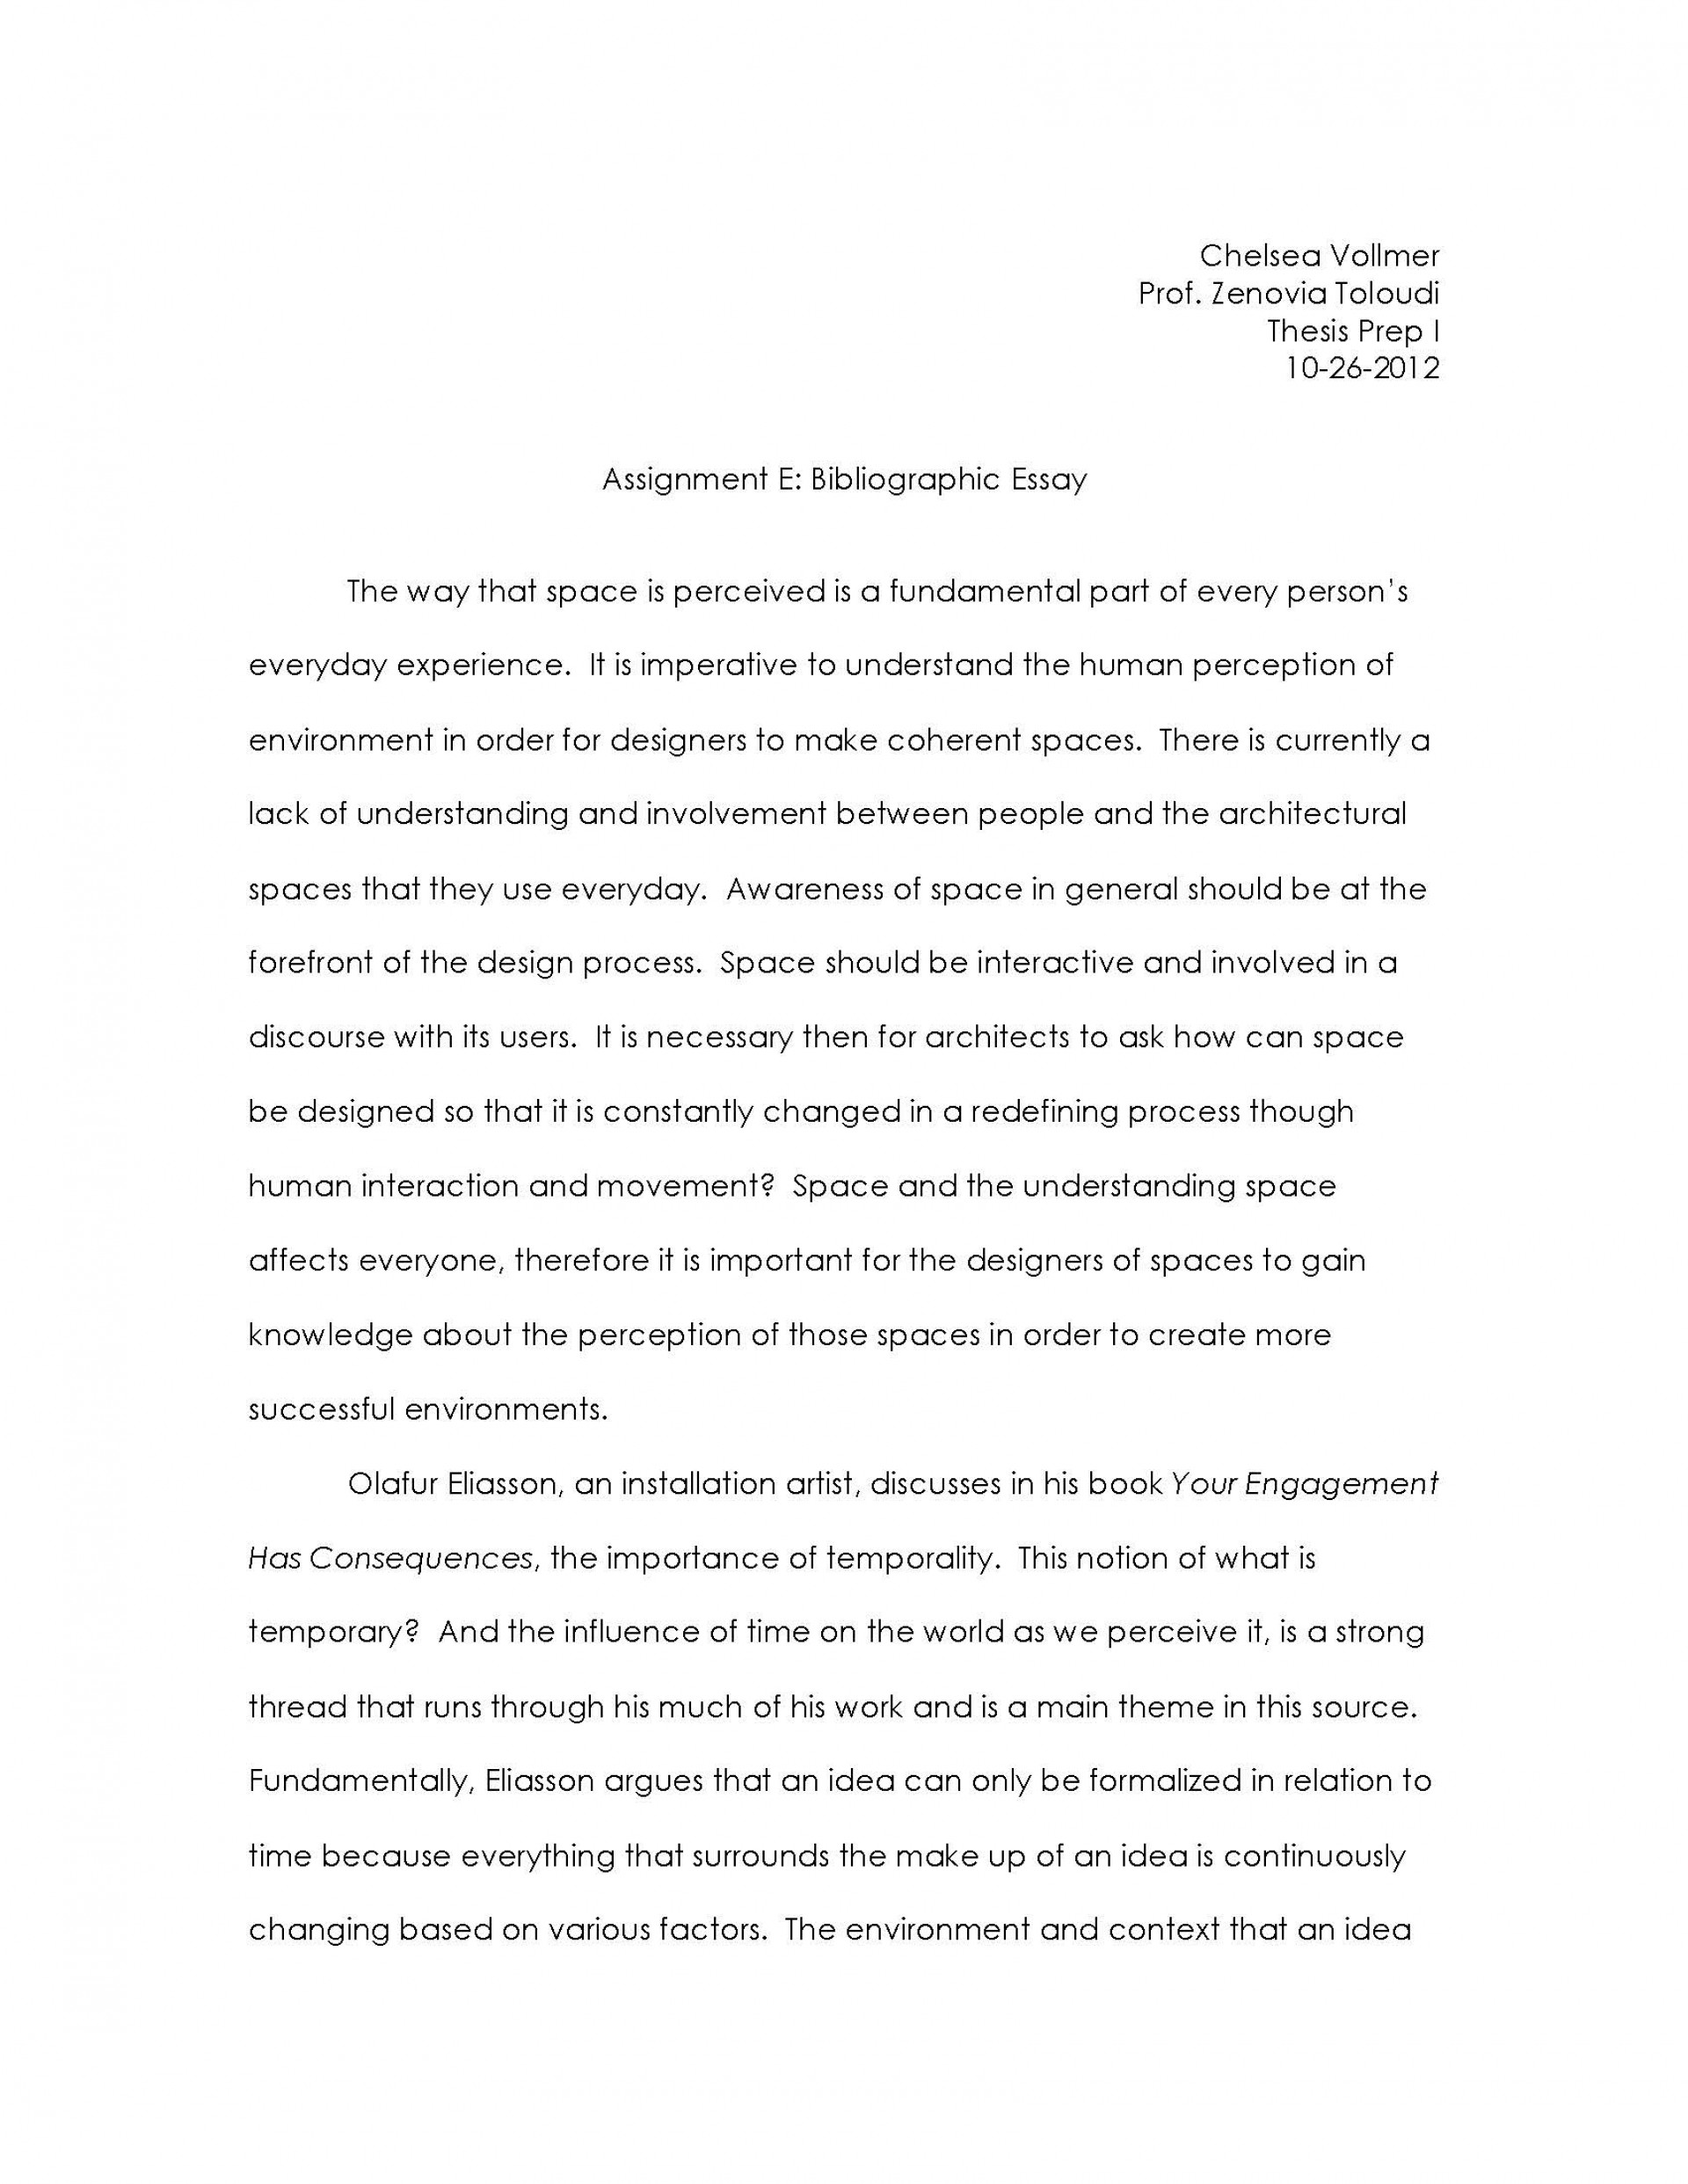 016 Assignment E Page 12 Essay Example Human Impact On The Environment Impressive Topics 1920